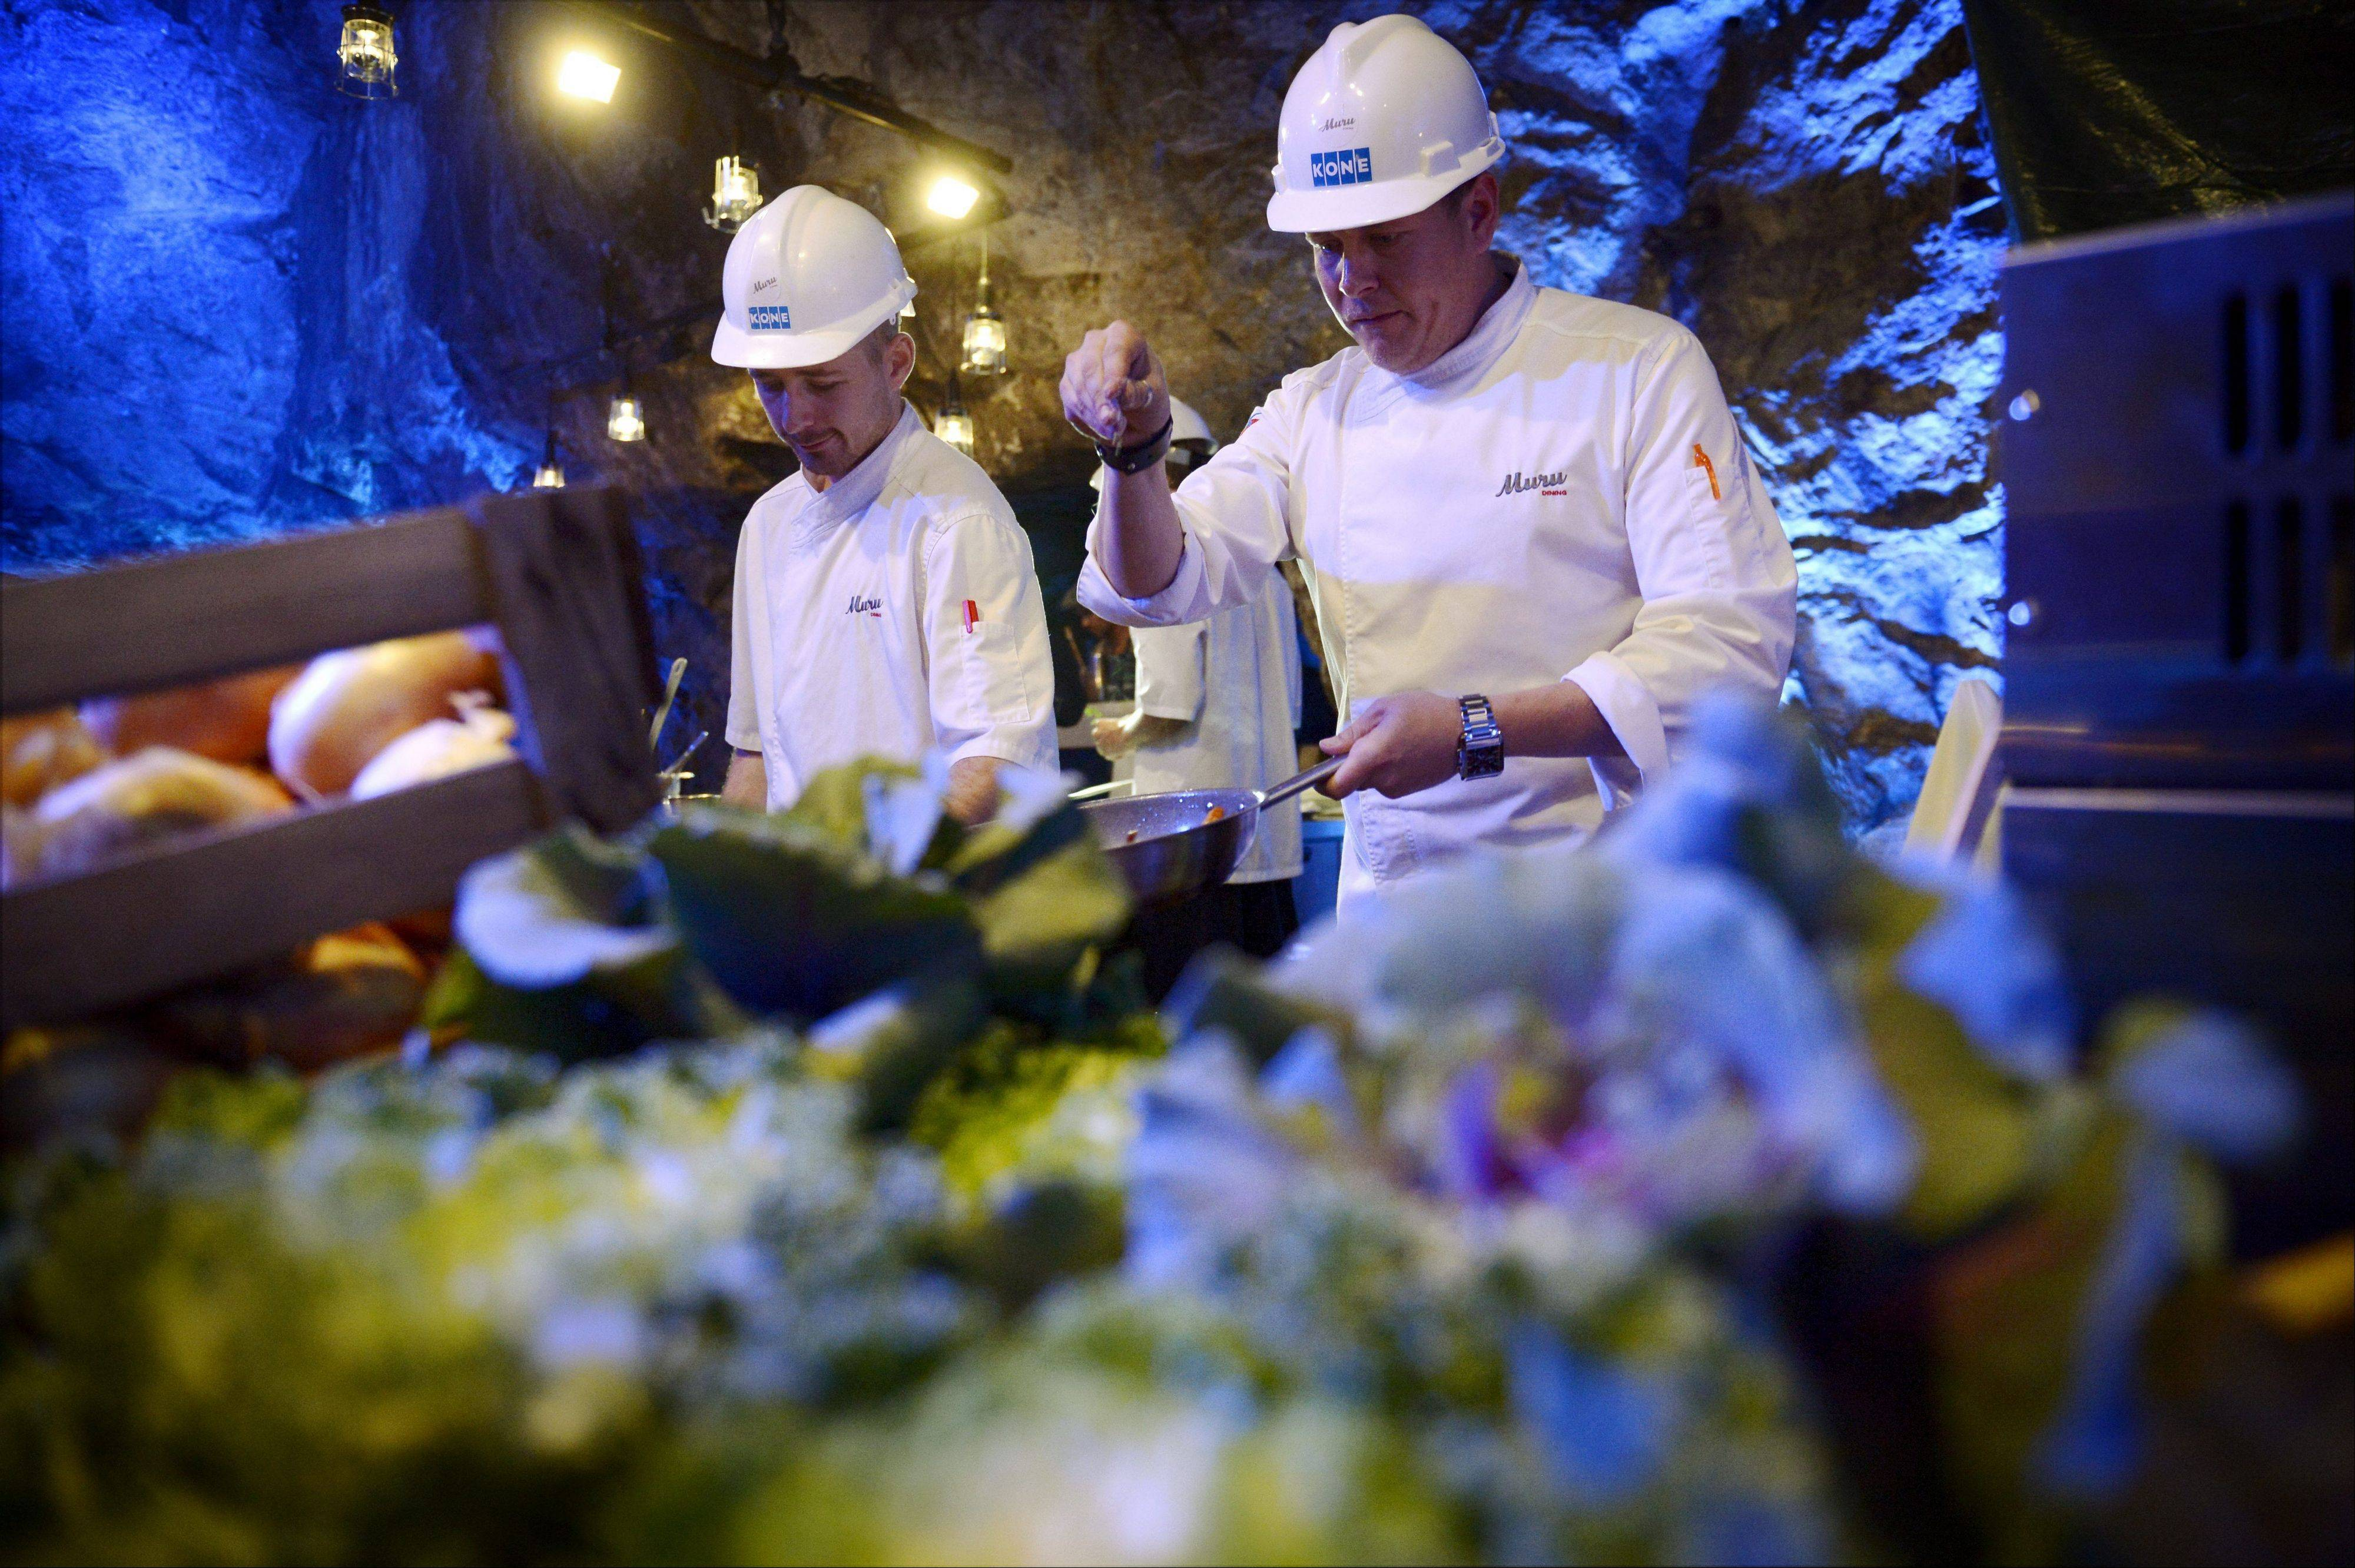 Chef Niklas Ekblom, left, and restaurateur Timo Linnamaki preparing food at Muru Pop Down restaurant at Tytyri mine in Lohja, Finland.